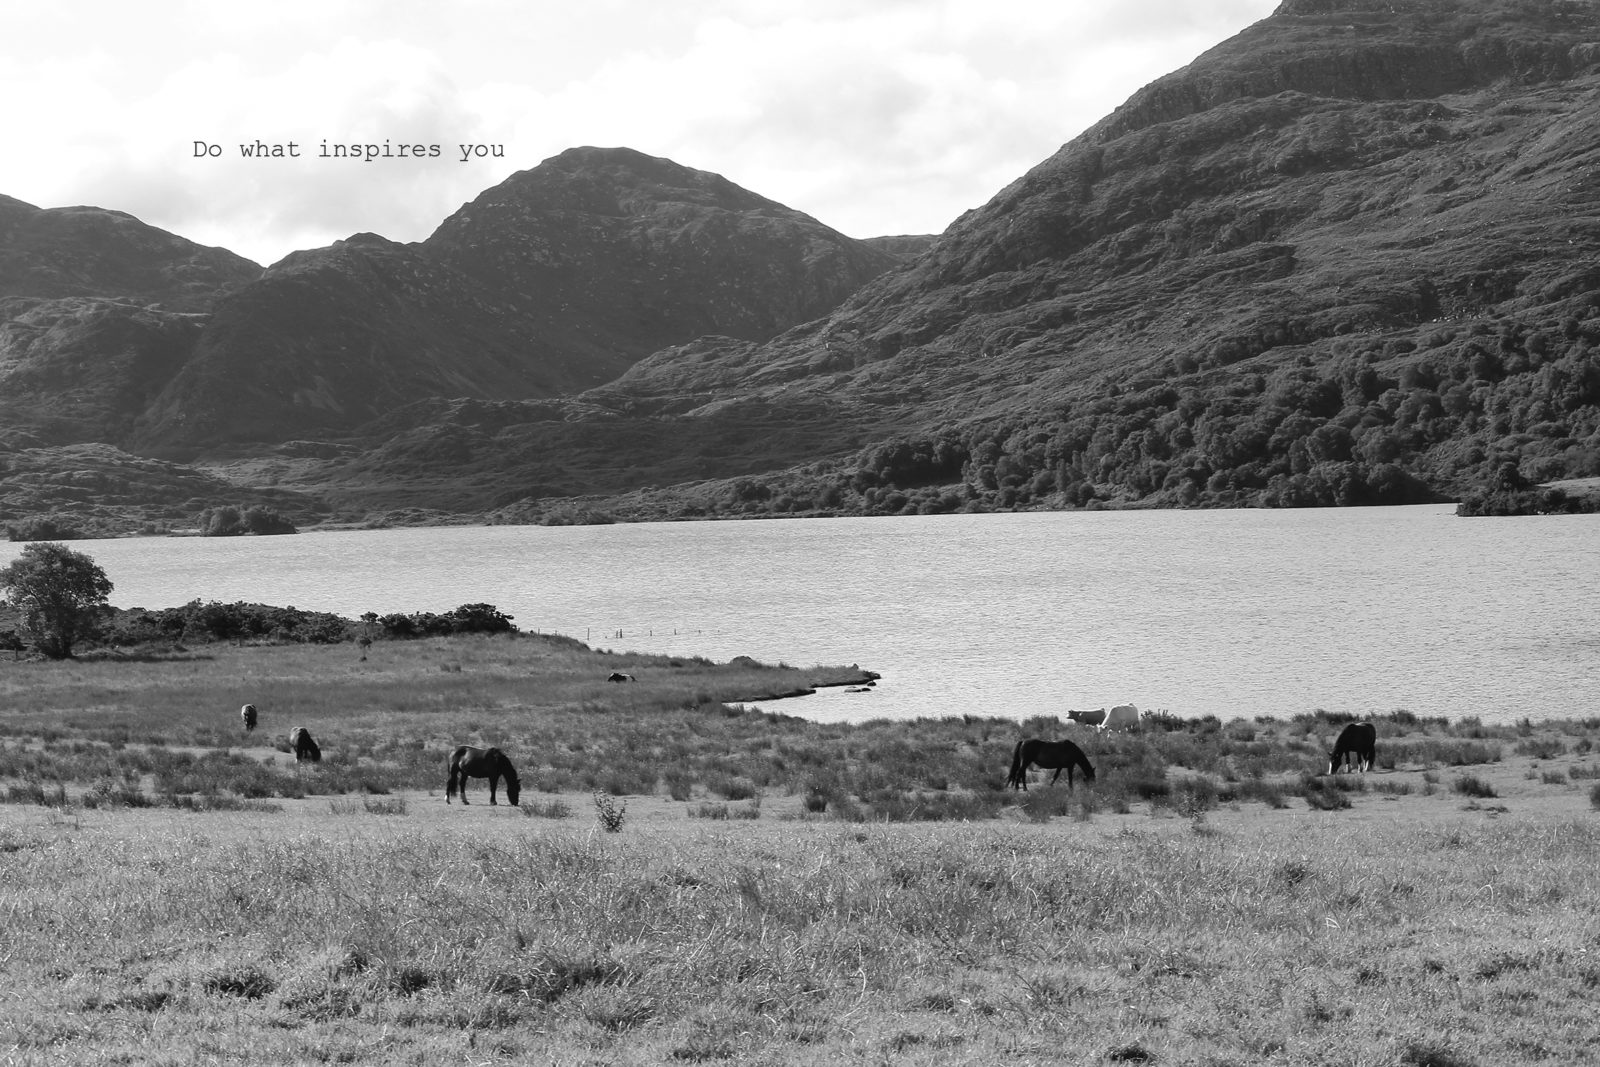 house of kerry a3 fine art photographic print words of 0501 copy do what inspires you horses cows